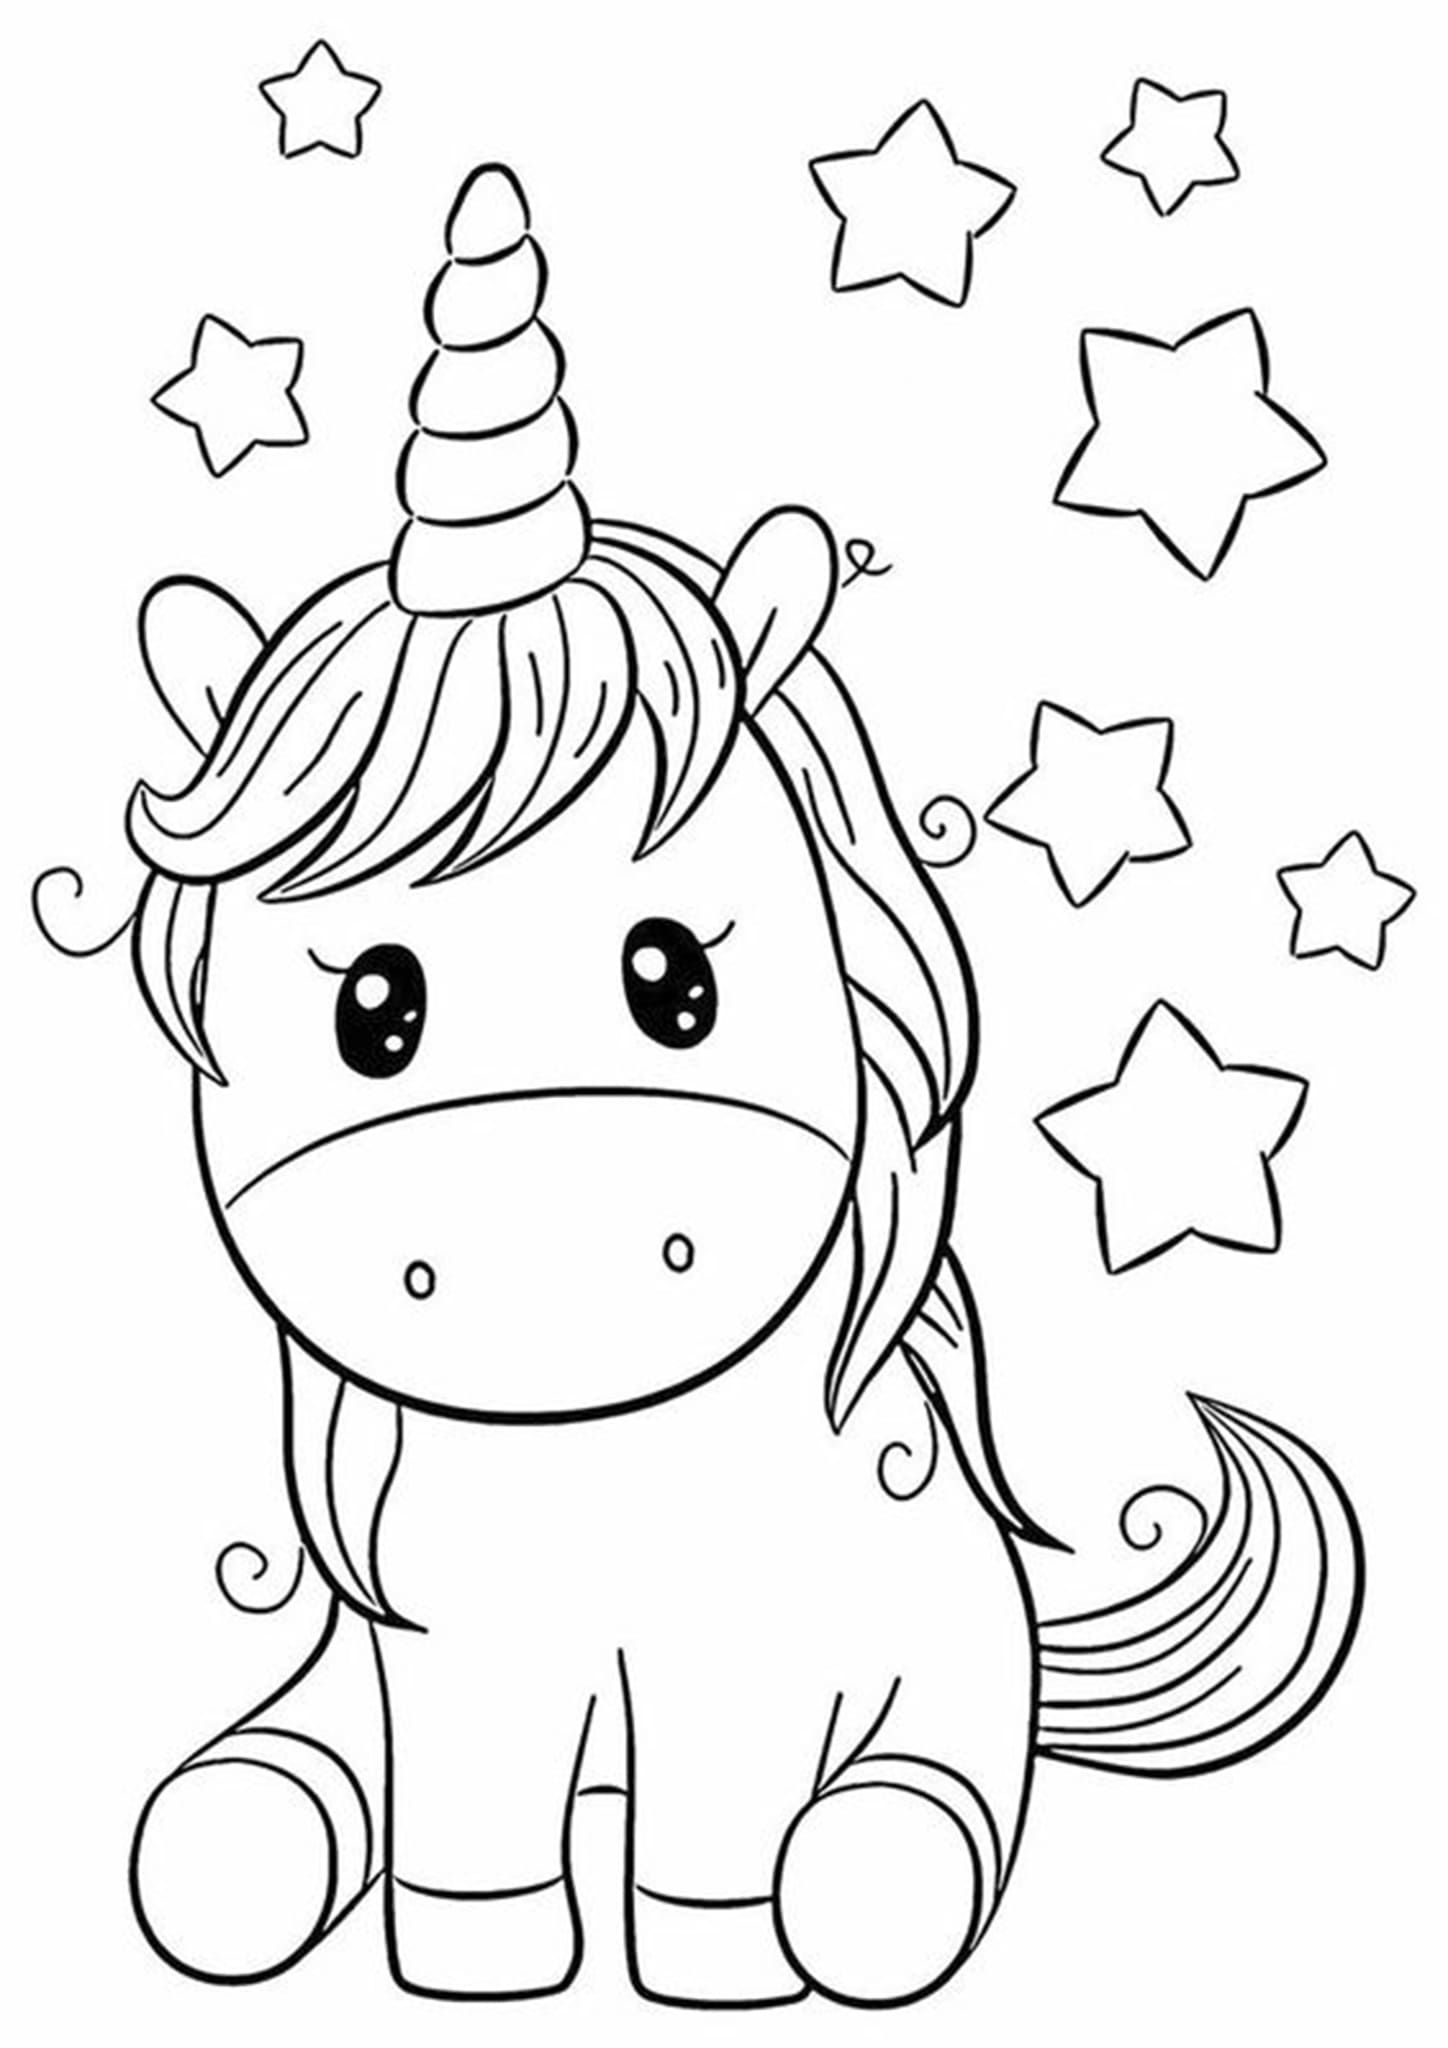 Free Easy To Print Baby Animal Coloring Pages In 2020 Baby Coloring Pages Unicorn Coloring Pages Cute Coloring Pages